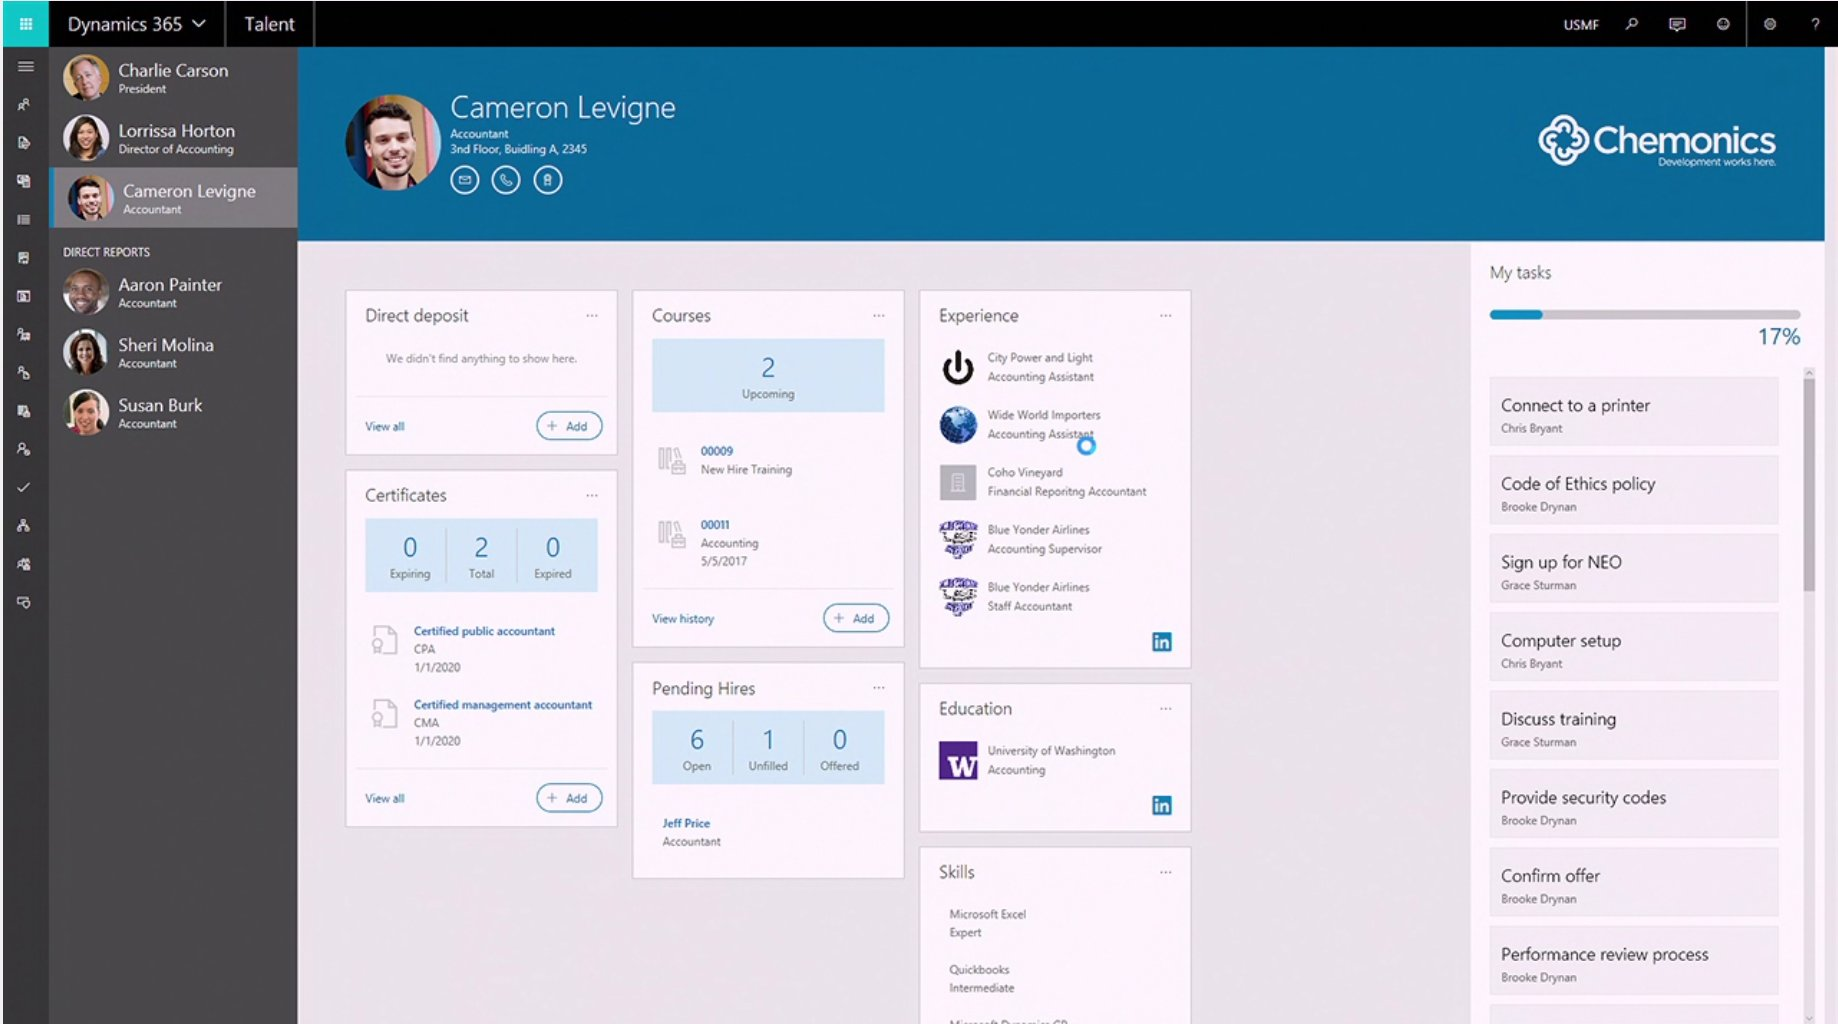 Beautiful employee profile with #Dyn365 for Talent with #LinkedIn  #MSBusinessFwd https://t.co/lEBt03UlDN